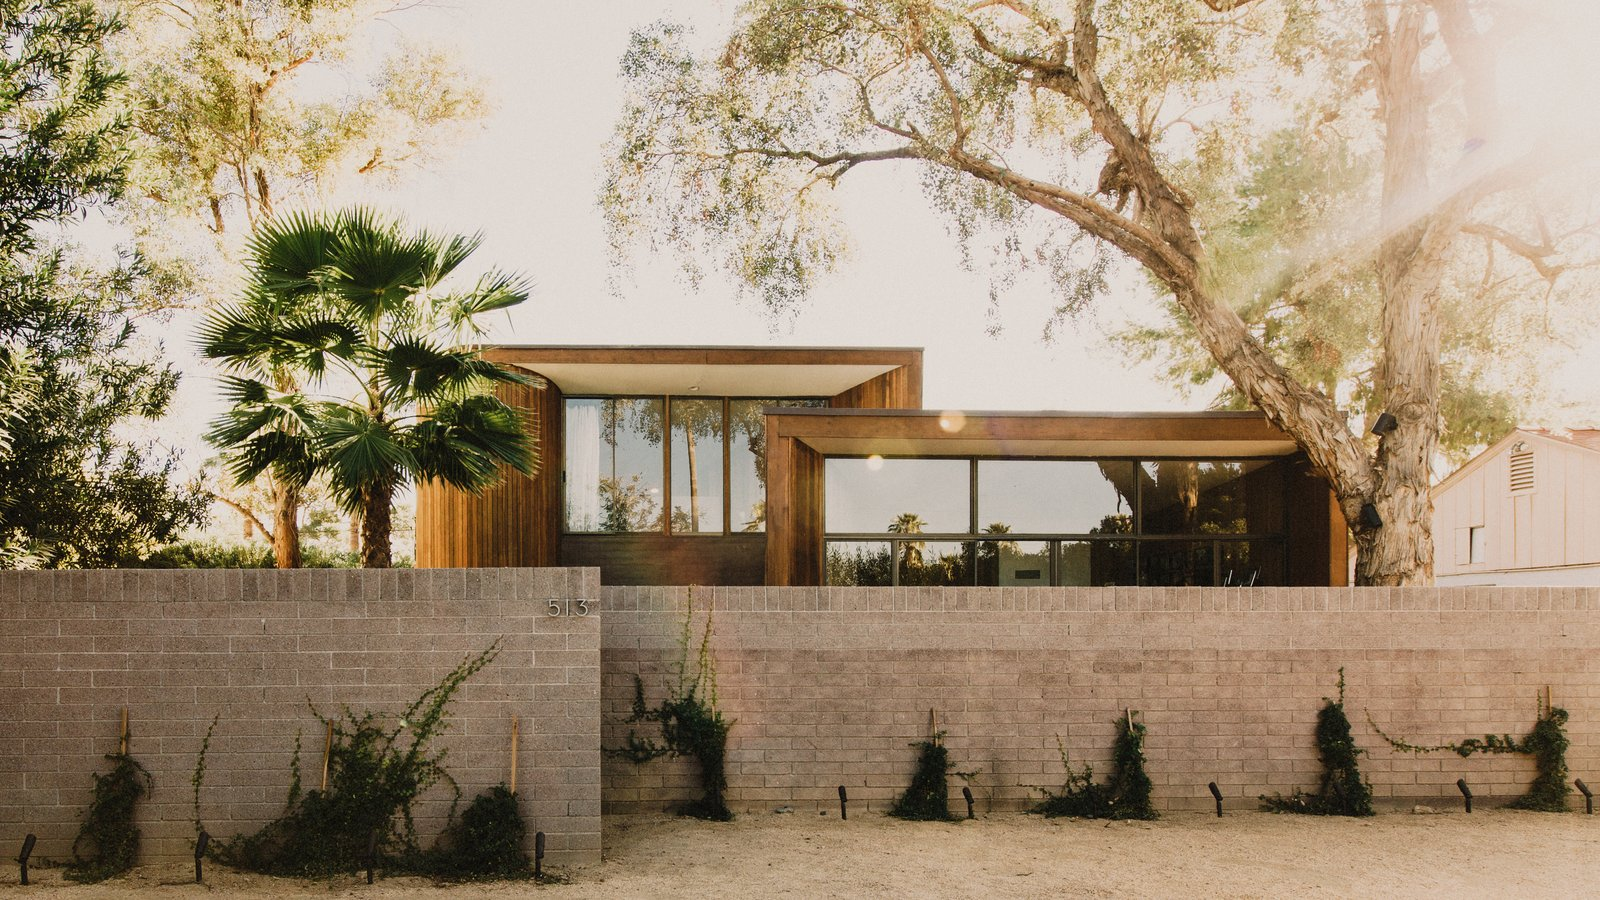 #modern #organic #exterior #wood #concrete #desert  #phoenix #arizona  Curves House by The Ranch Mine